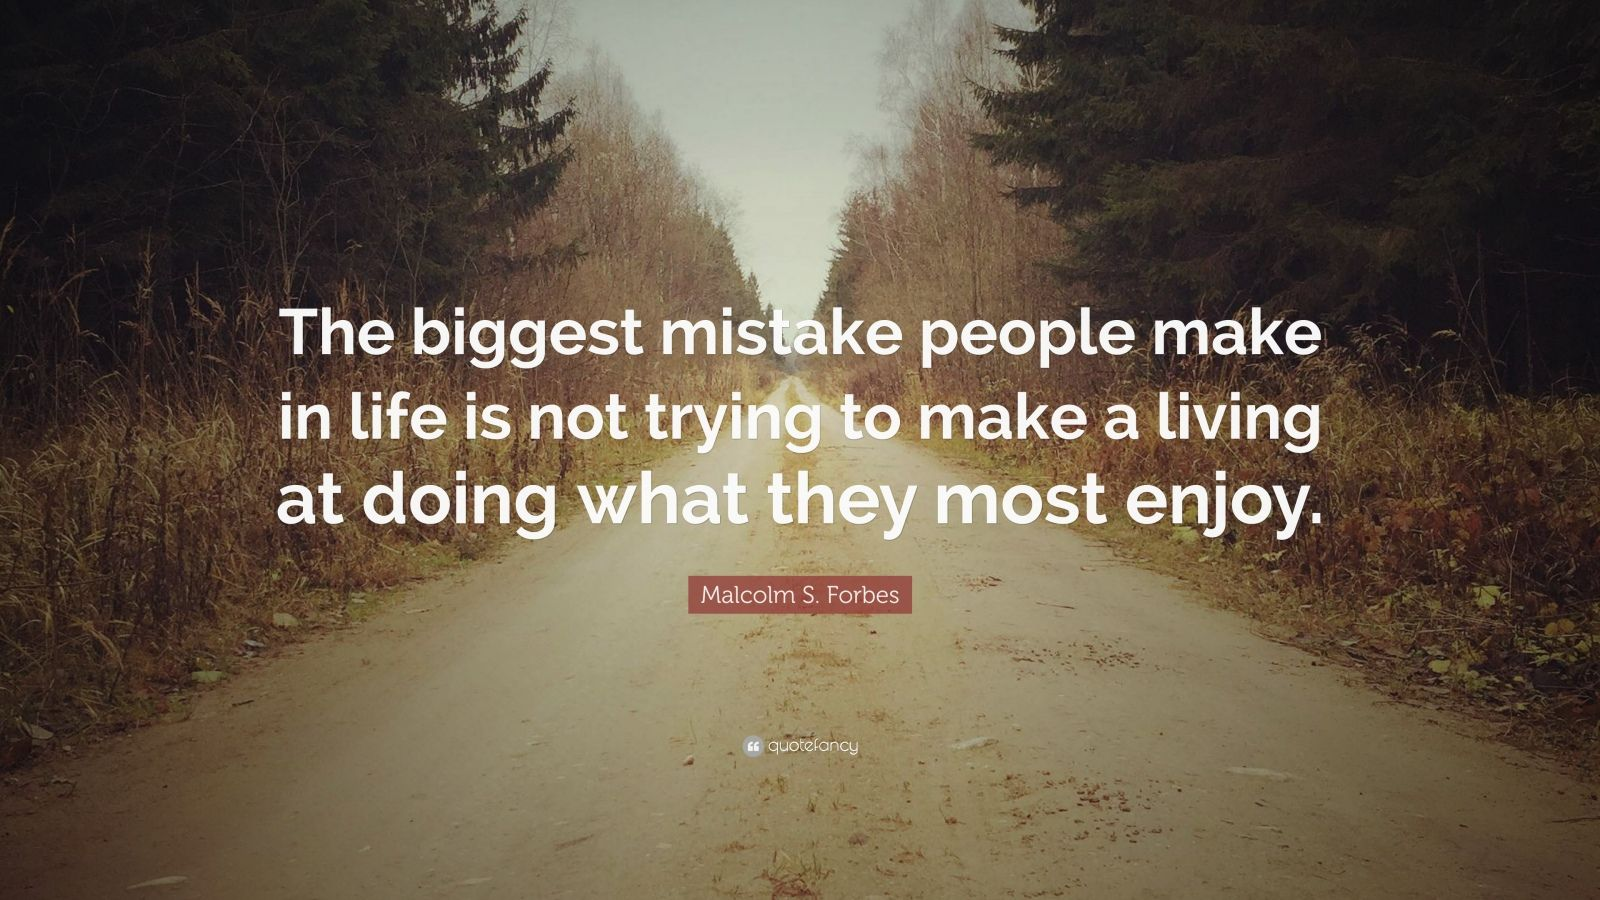 """Malcolm S. Forbes Quote: """"The biggest mistake people make in life is not trying to make a living at doing what they most enjoy."""""""